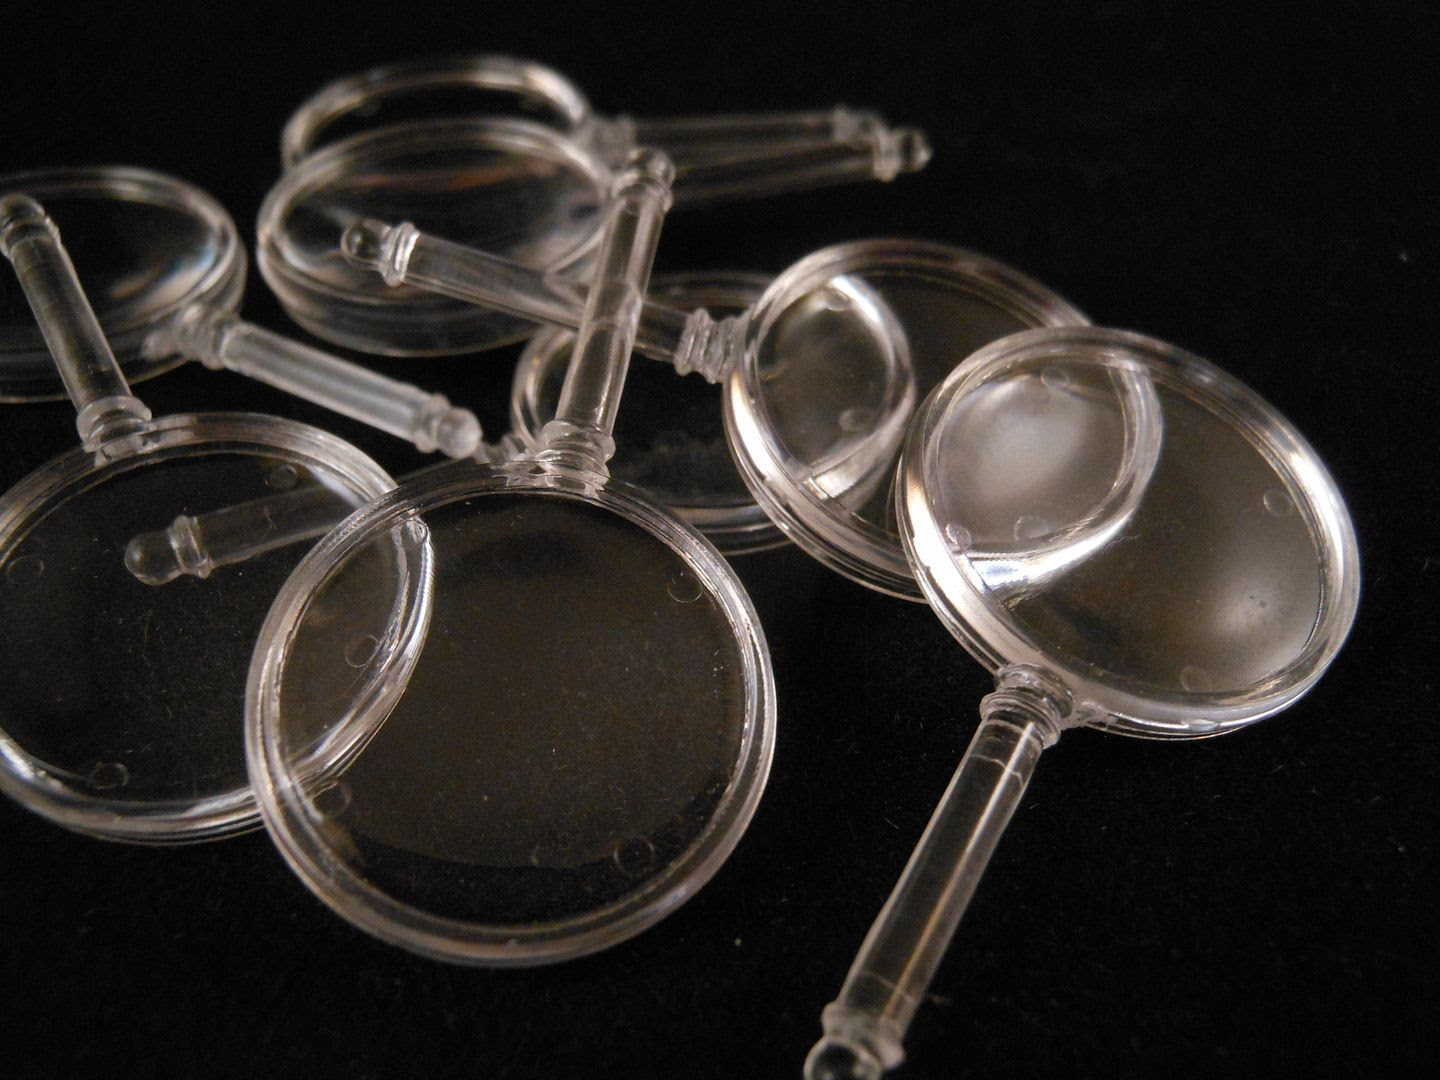 Small plastic magnifying glasses, used to show the location of clues in Cluedo Super Sleuth.